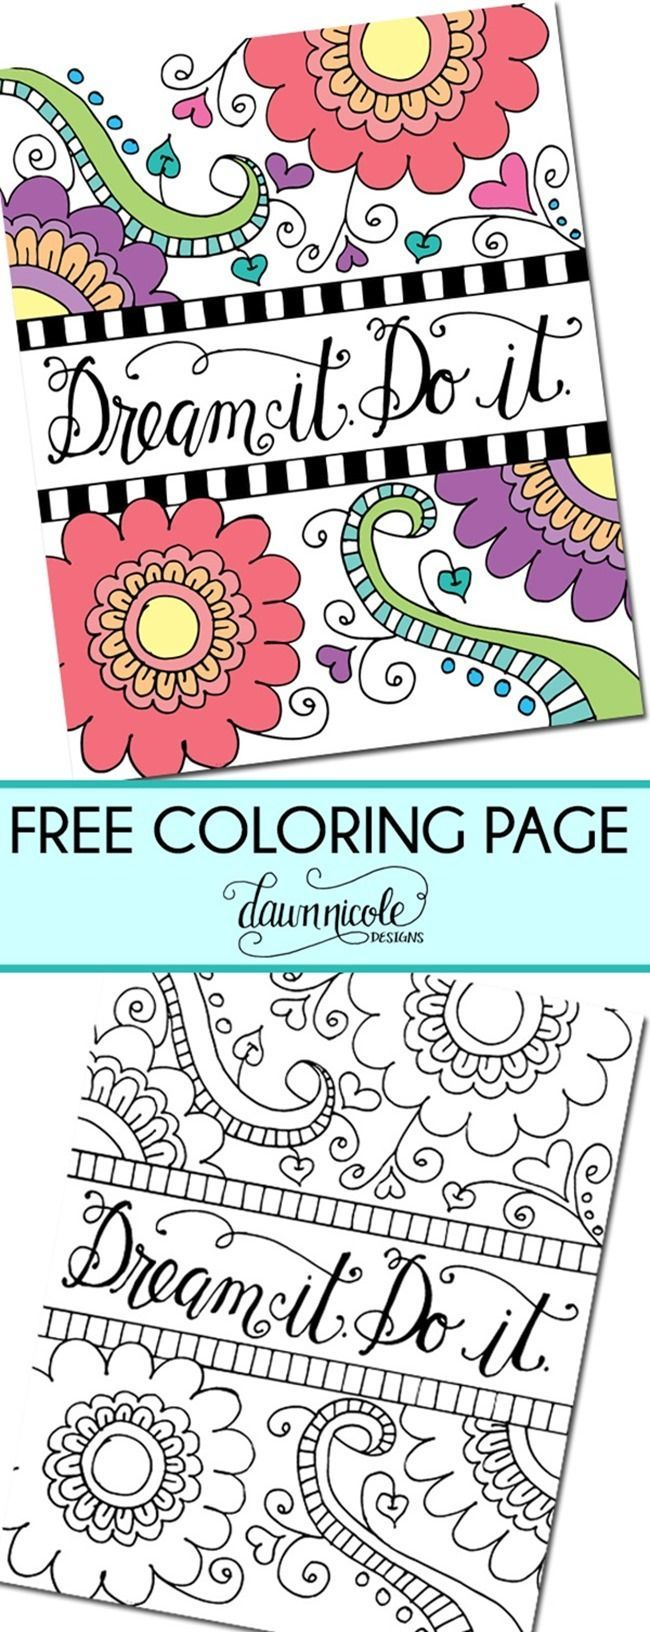 218 best kids+adults crafts,coloring sheets images on Pinterest ...